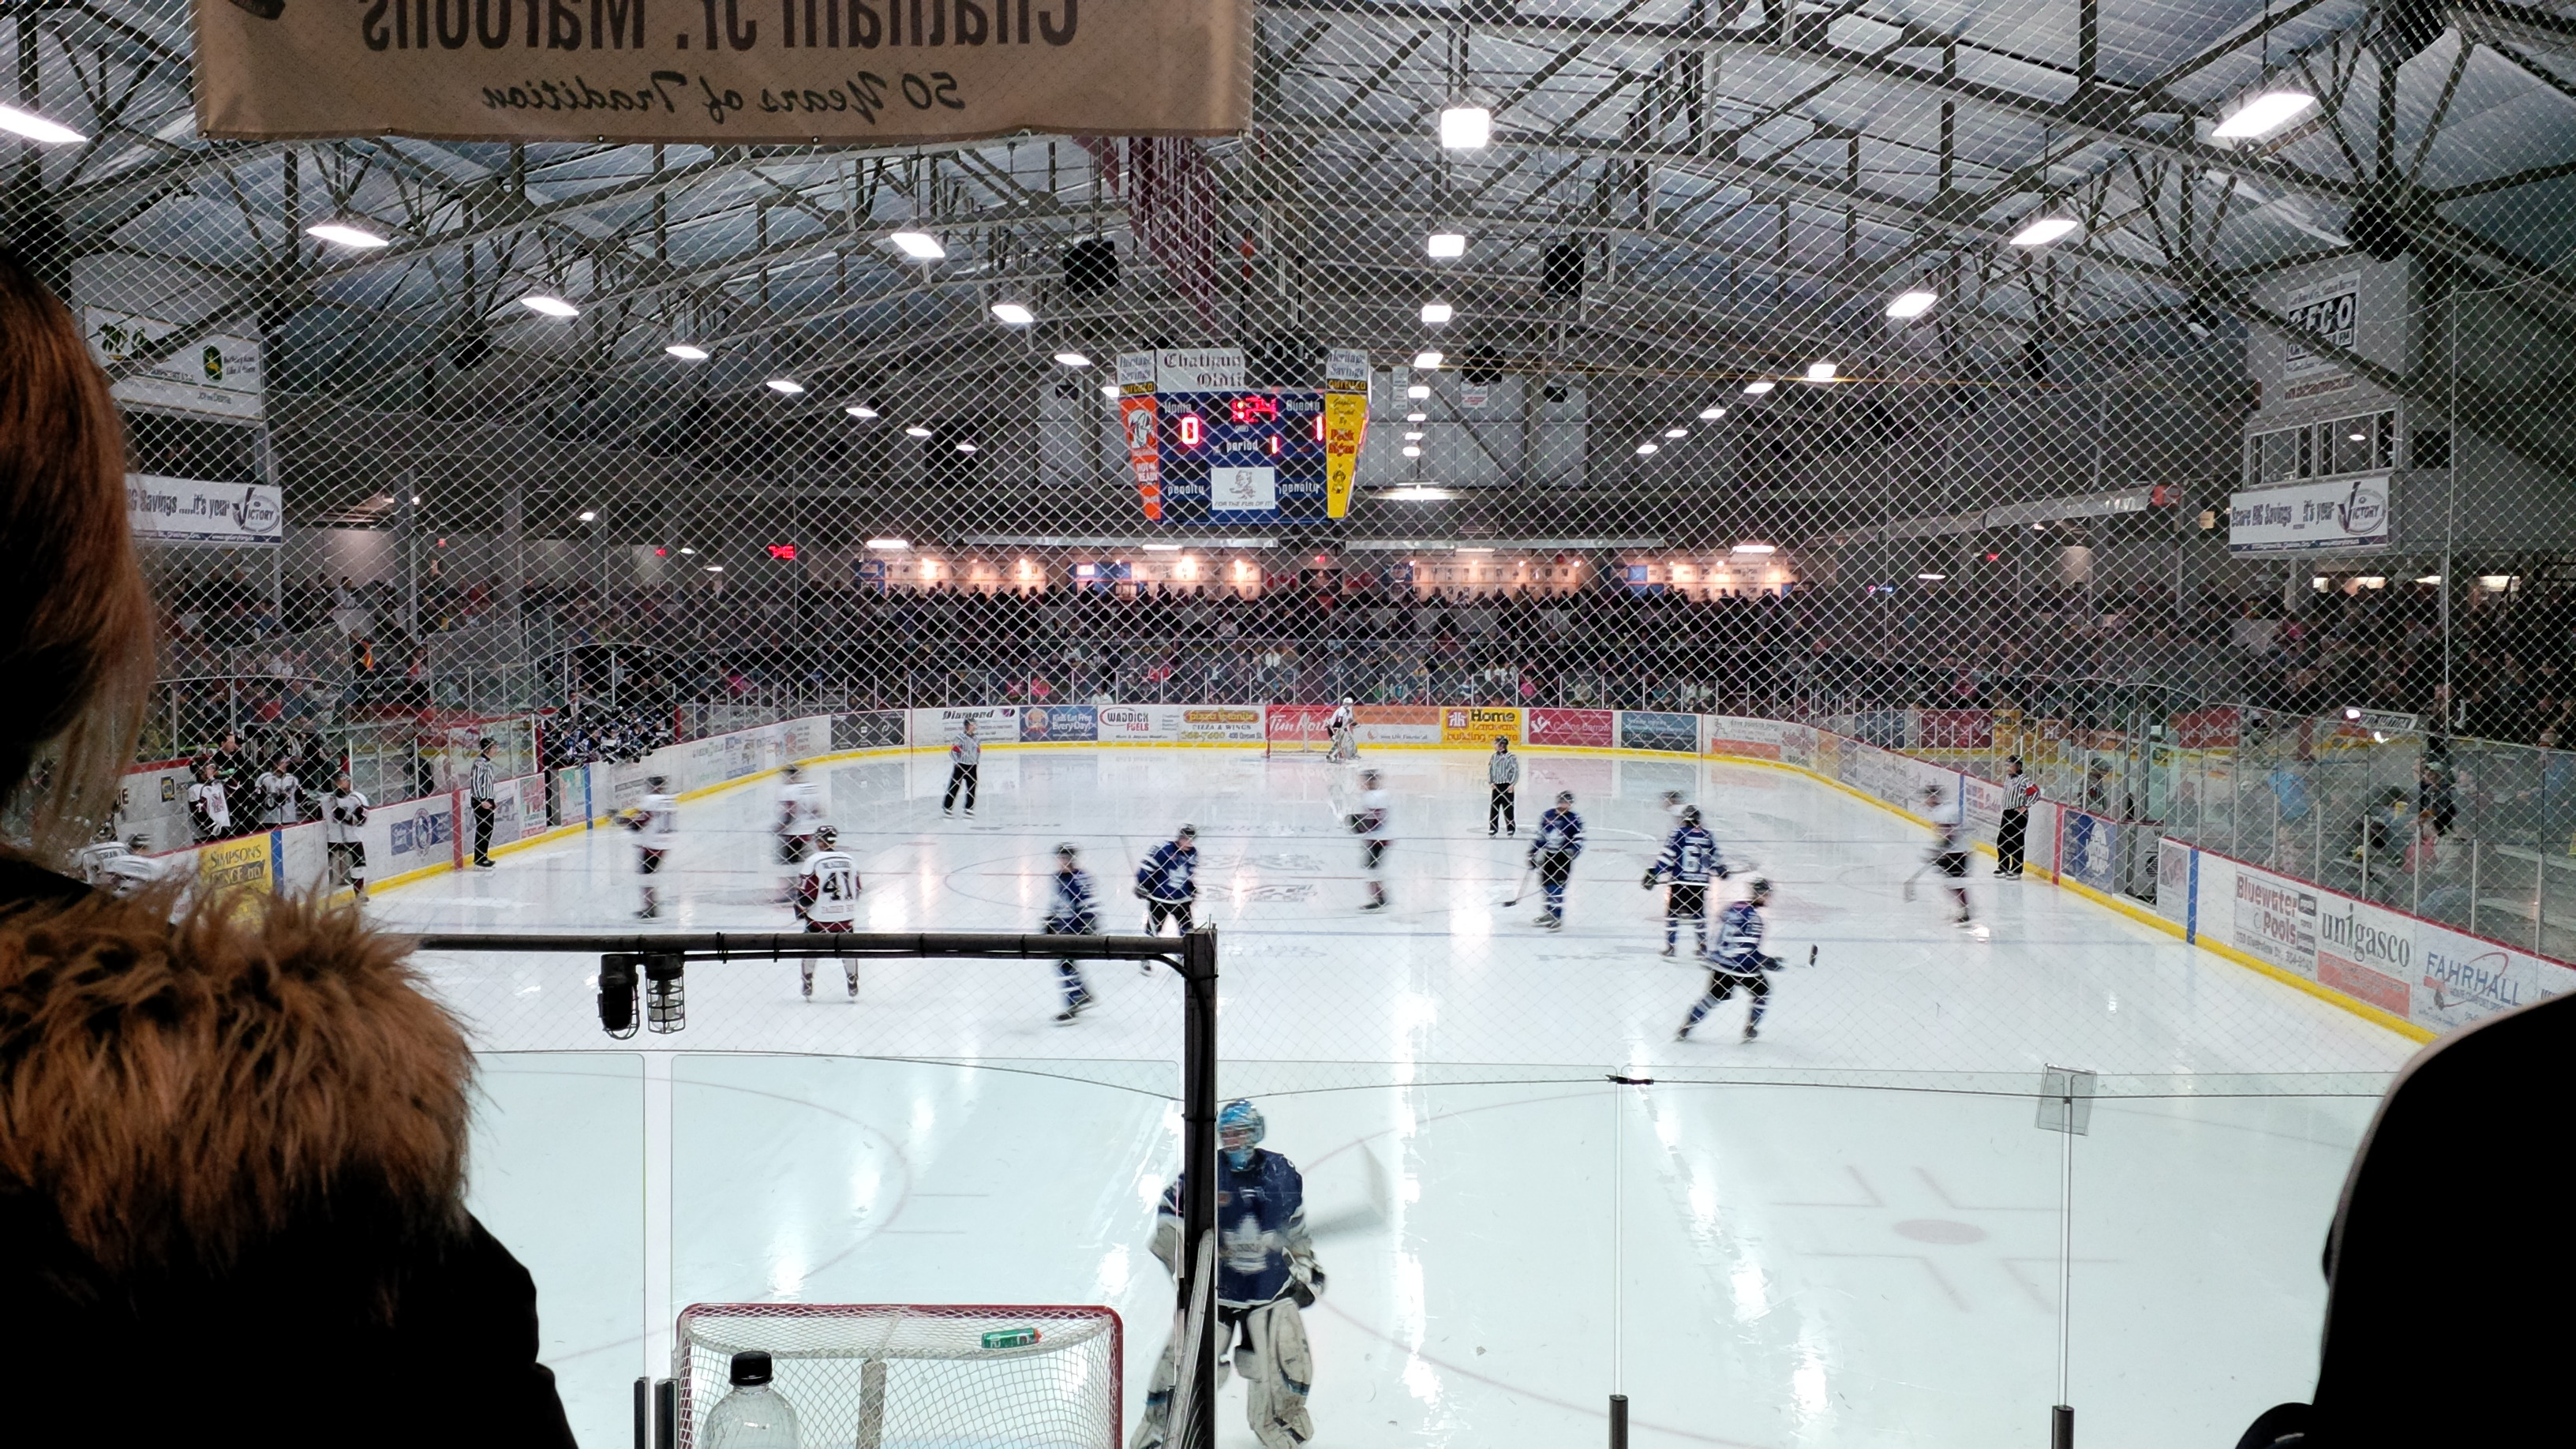 Chatham Maroons take on the London Nationals at the Chatham Memorial Arena in a 2013 playoff game. (Ricardo Veneza)